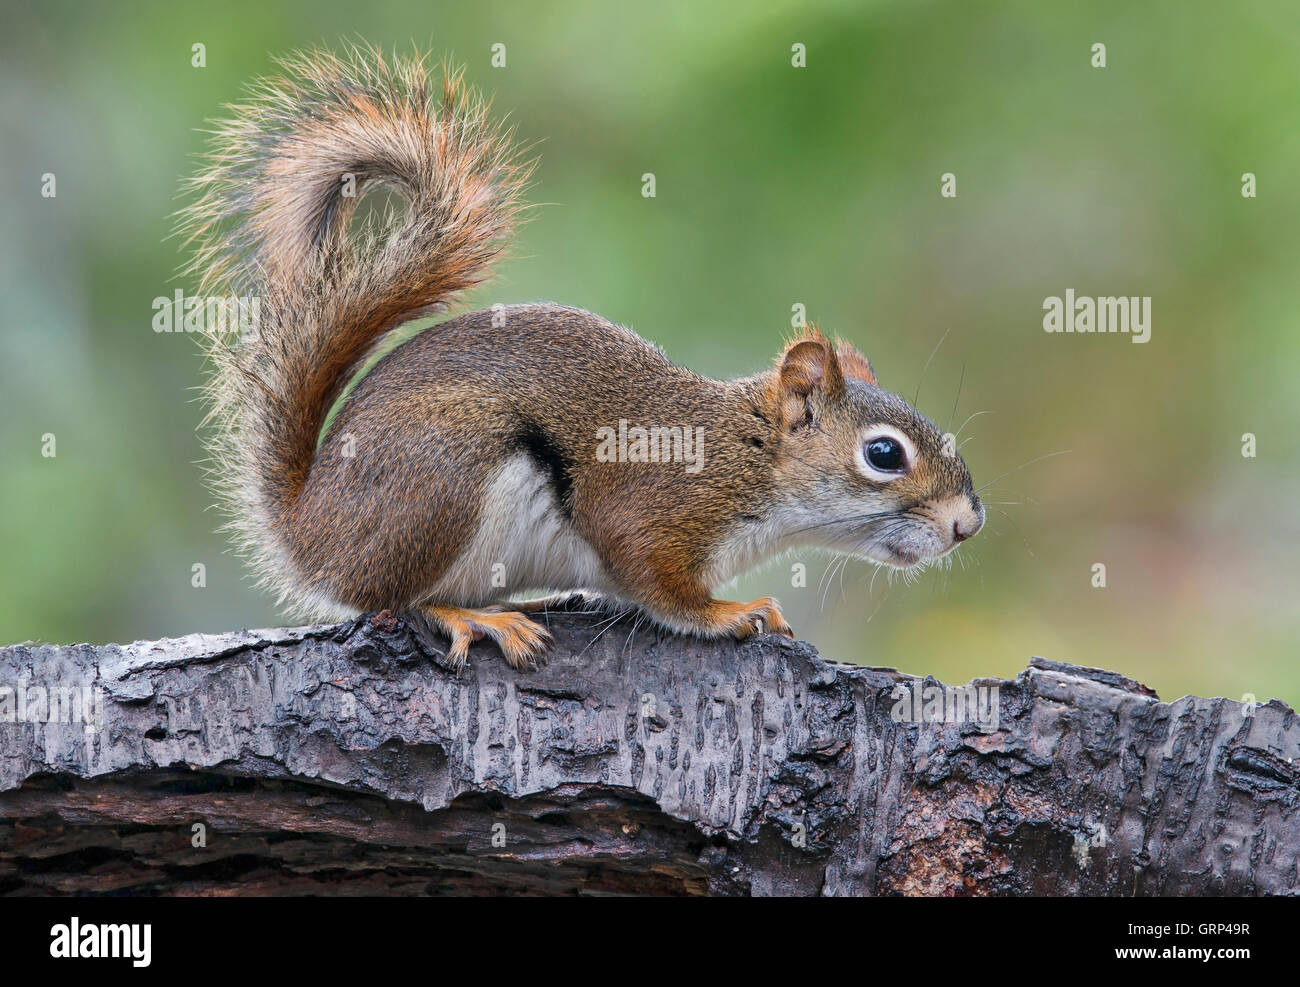 Eastern Red Squirrel making sounds, chatting (Tamiasciurus or Sciurus hudsonicus) E North America - Stock Image